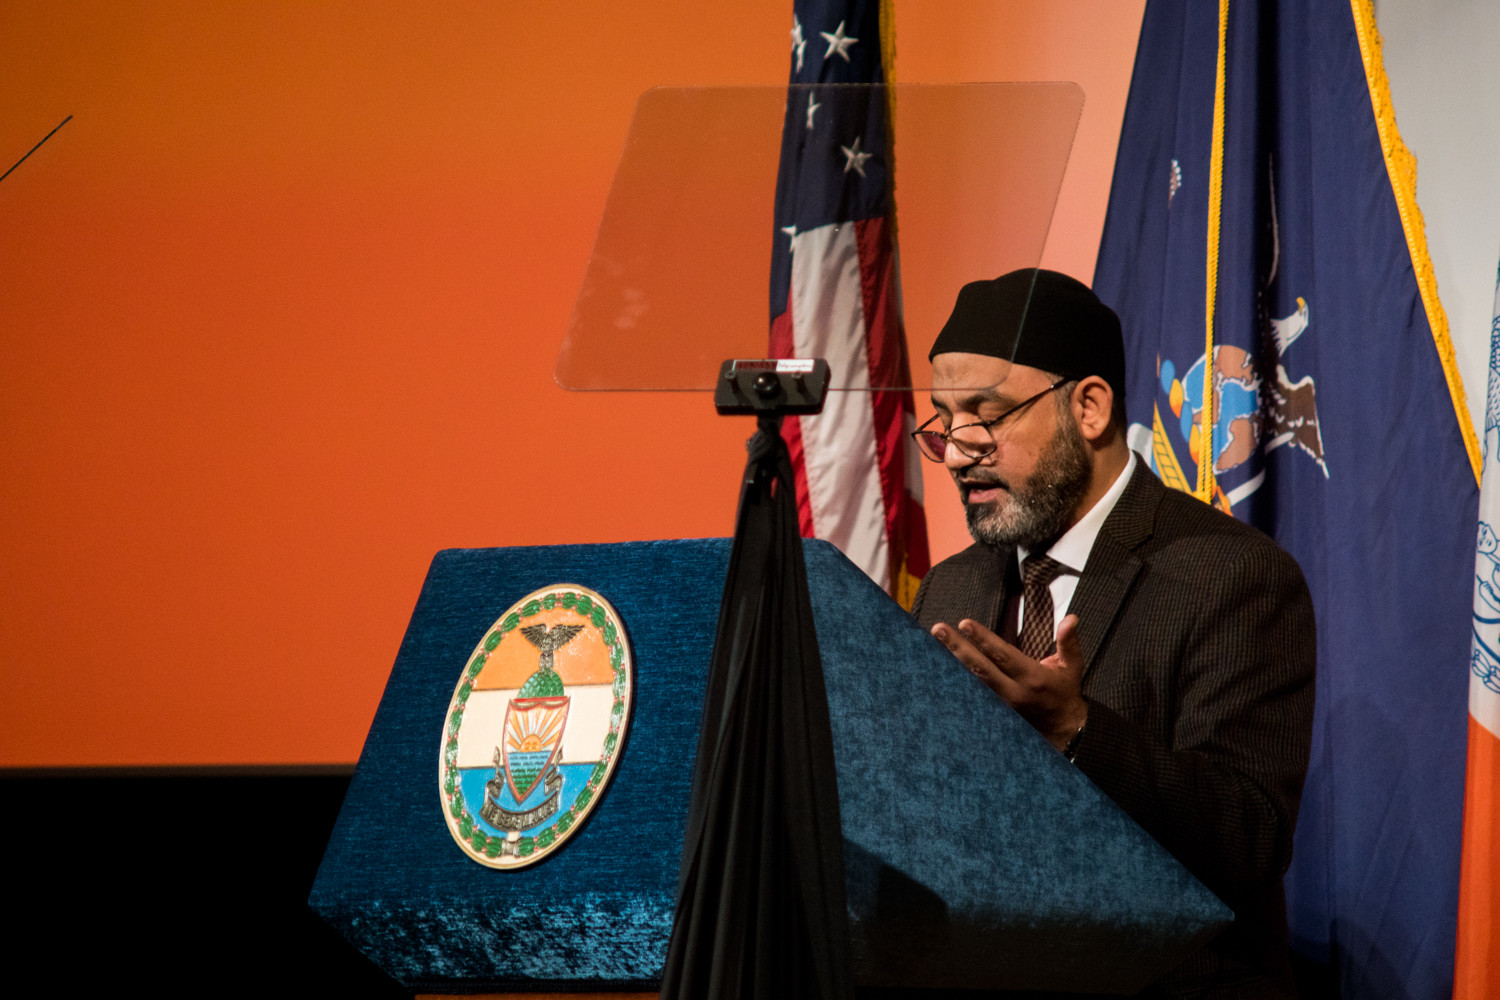 Ali Kamel, an imam at the Muslim American Society's Upper New York subchapter, raises his hands in prayer as he gives the invocation before Ruben Diaz Jr.'s state of the borough address at the Bronx High School of Science.